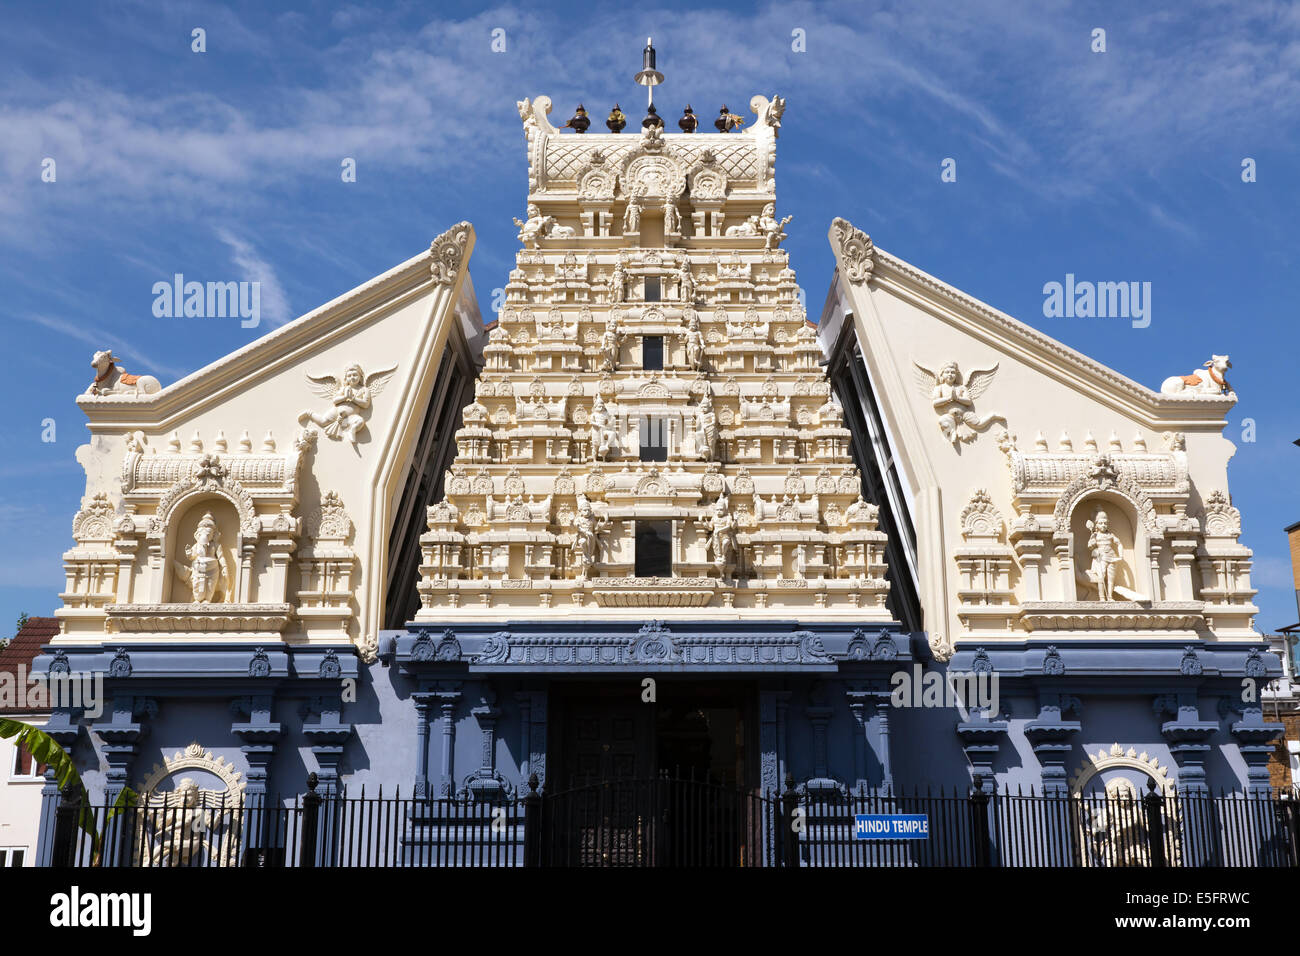 View of the London Shiva Koil, a Hindu Temple in  Lewisham, dedicated to the Lord Shiva. - Stock Image